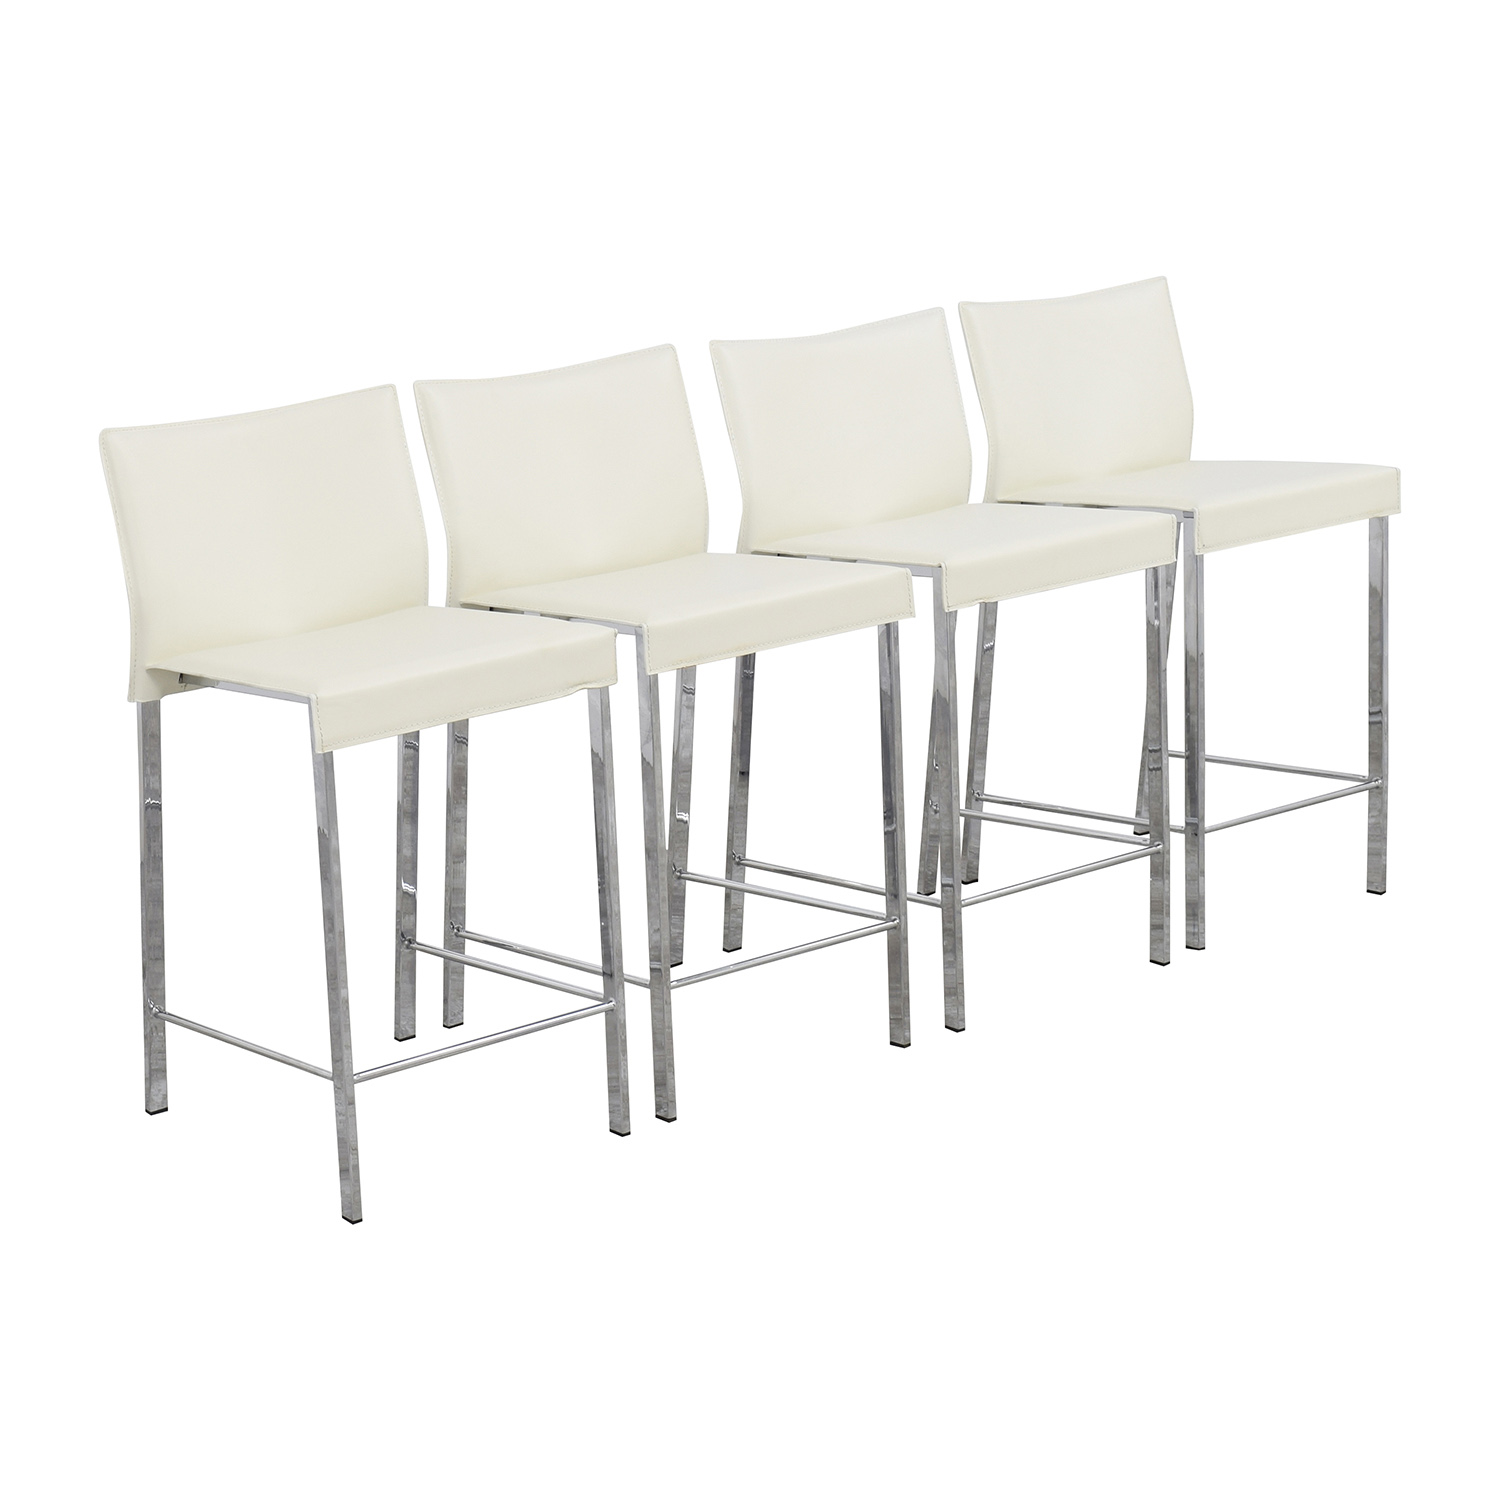 InMod InMod Riley-C Counter White Stool for sale